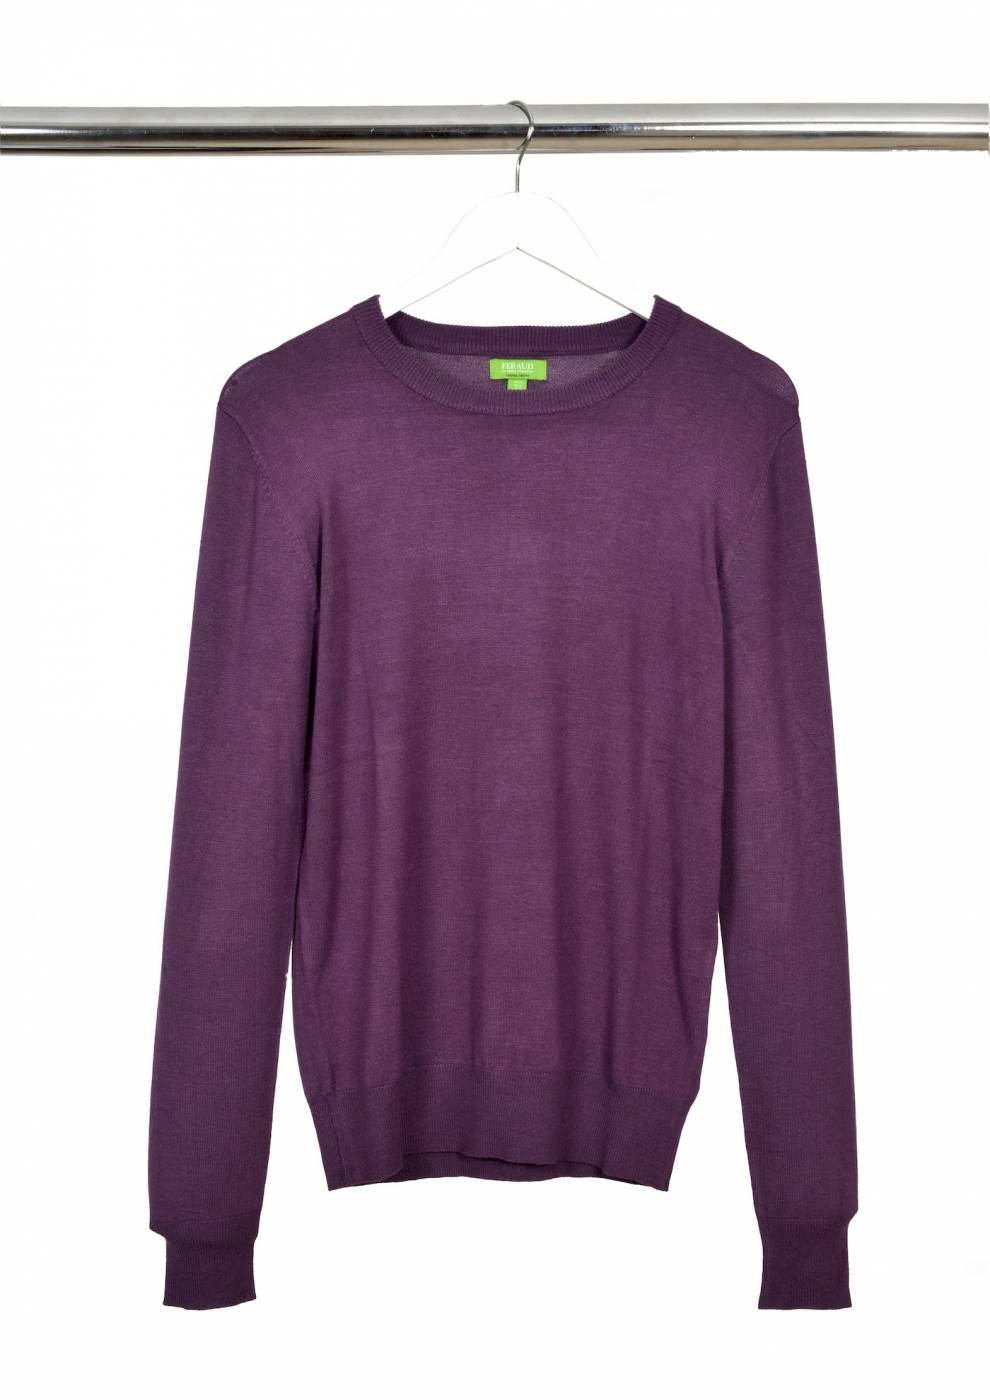 21.Connor-Purple-small